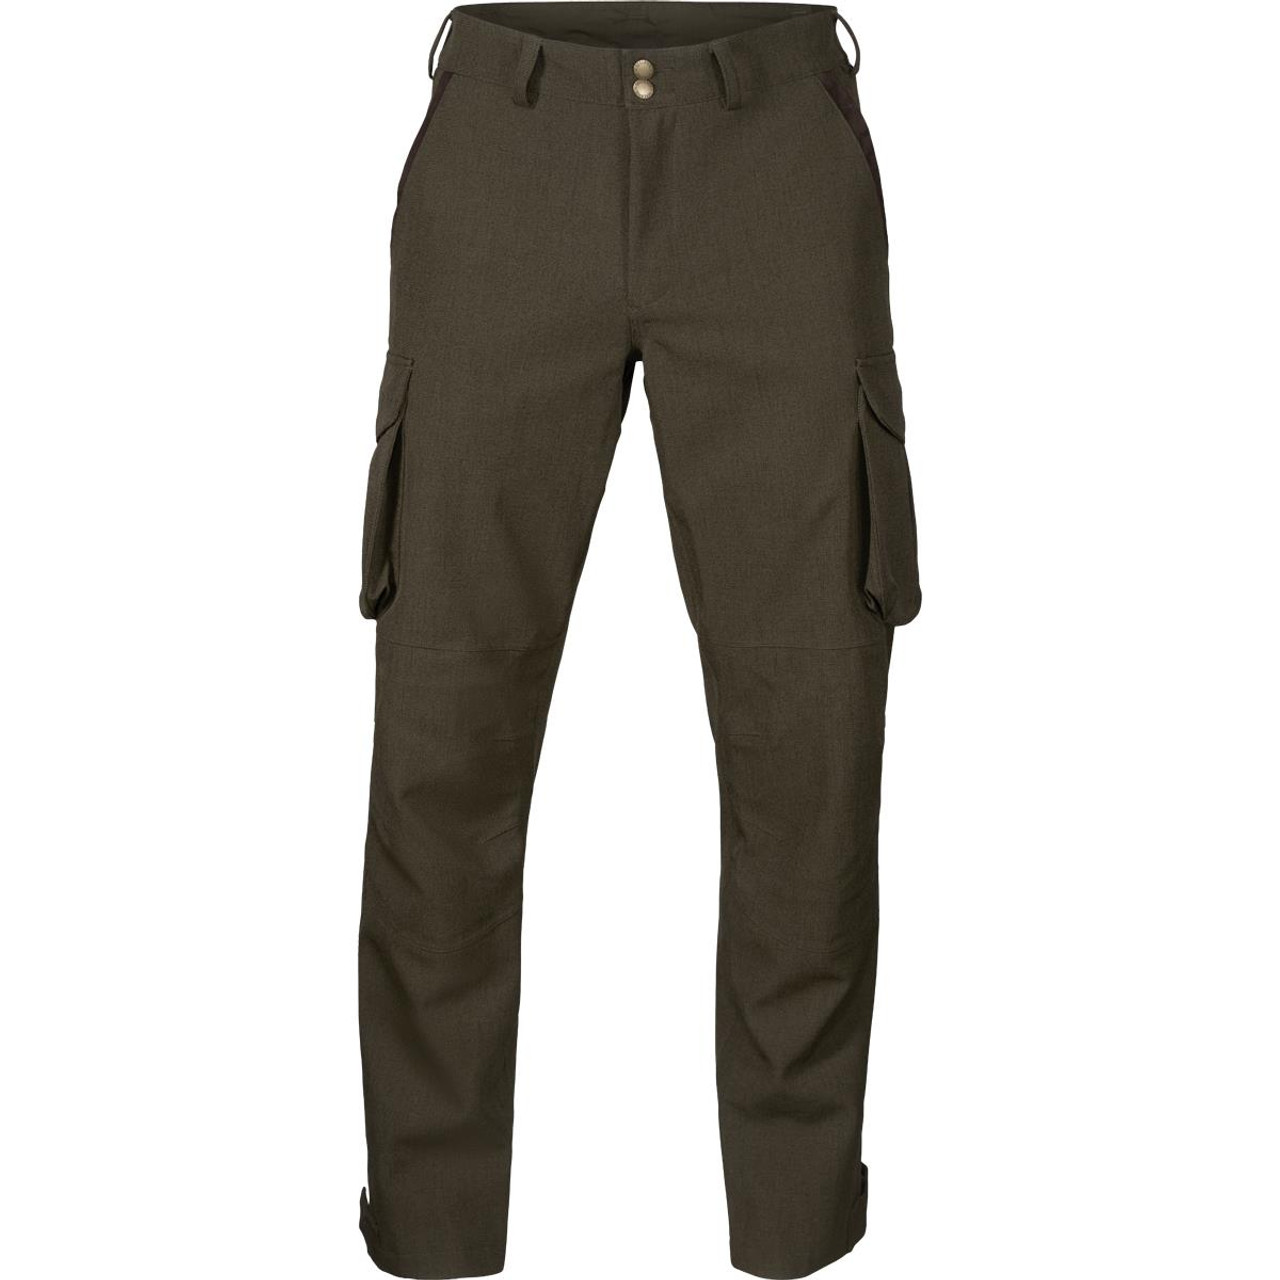 Shaded Olive Seeland Woodcock Advanced Trousers